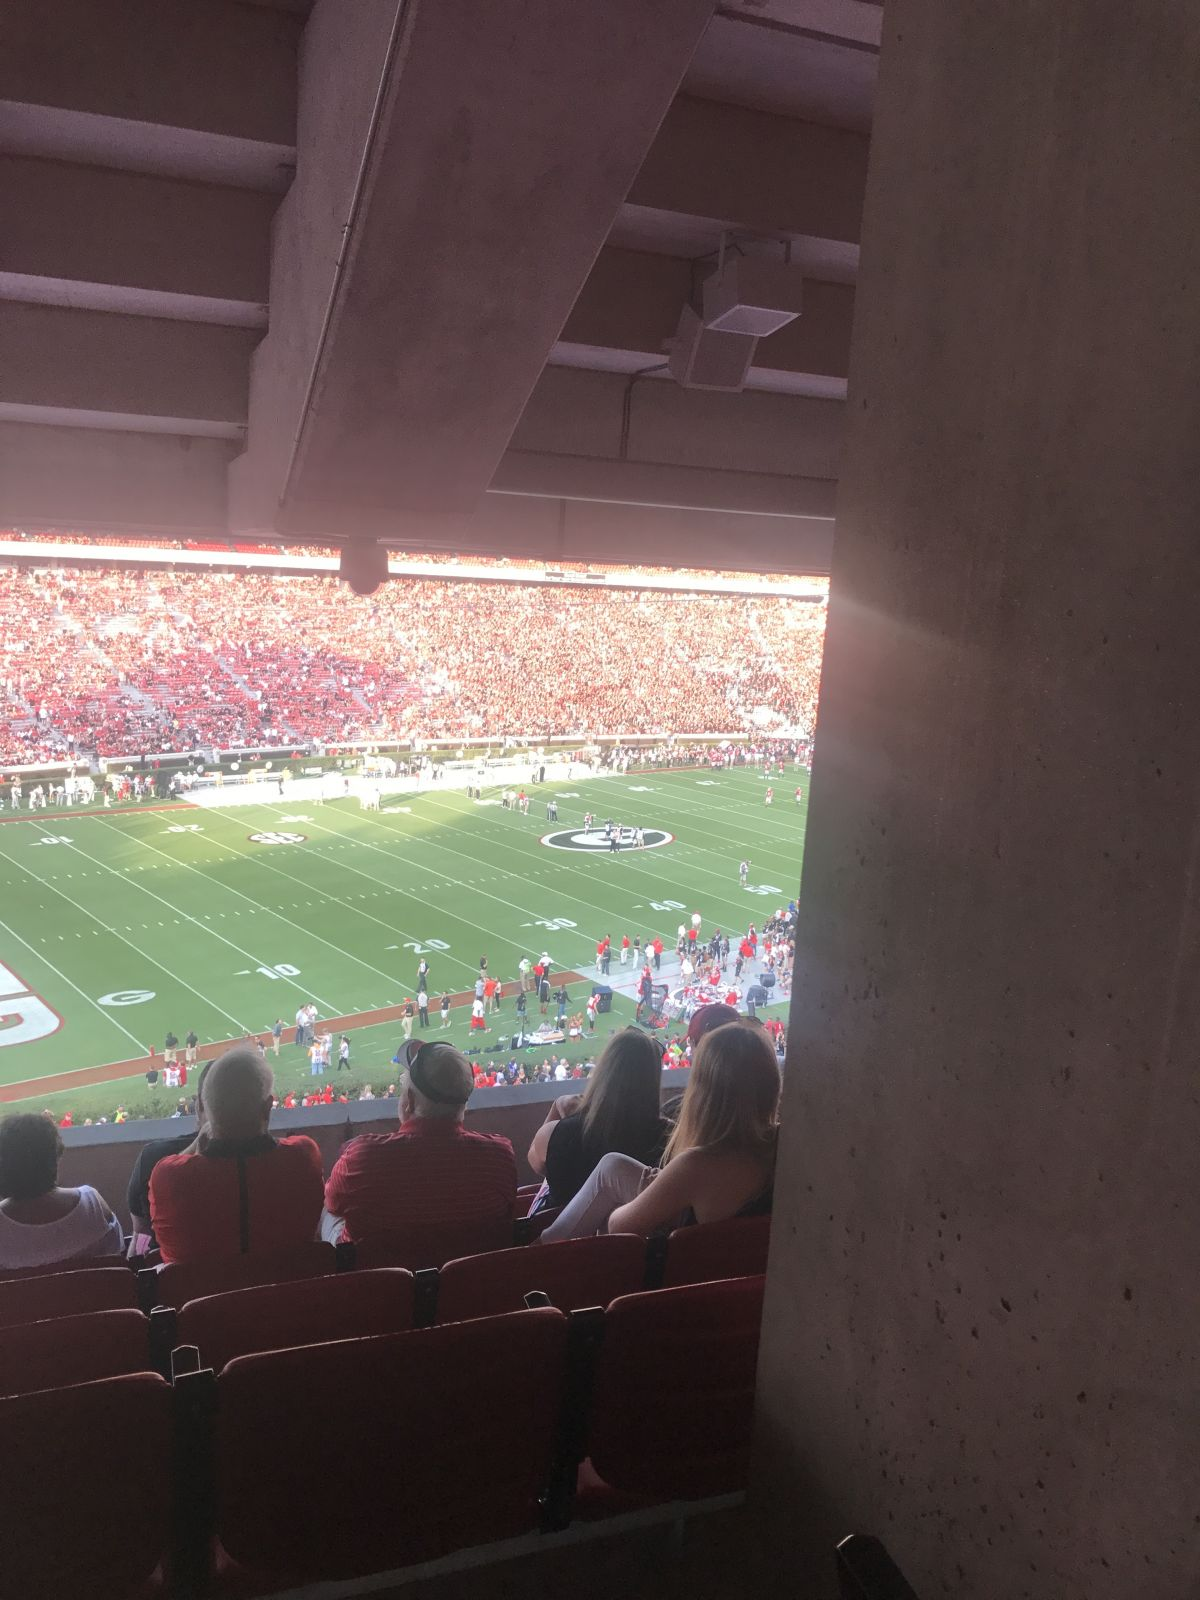 Seat View for Sanford Stadium Section 236, Row 7, Seat 10